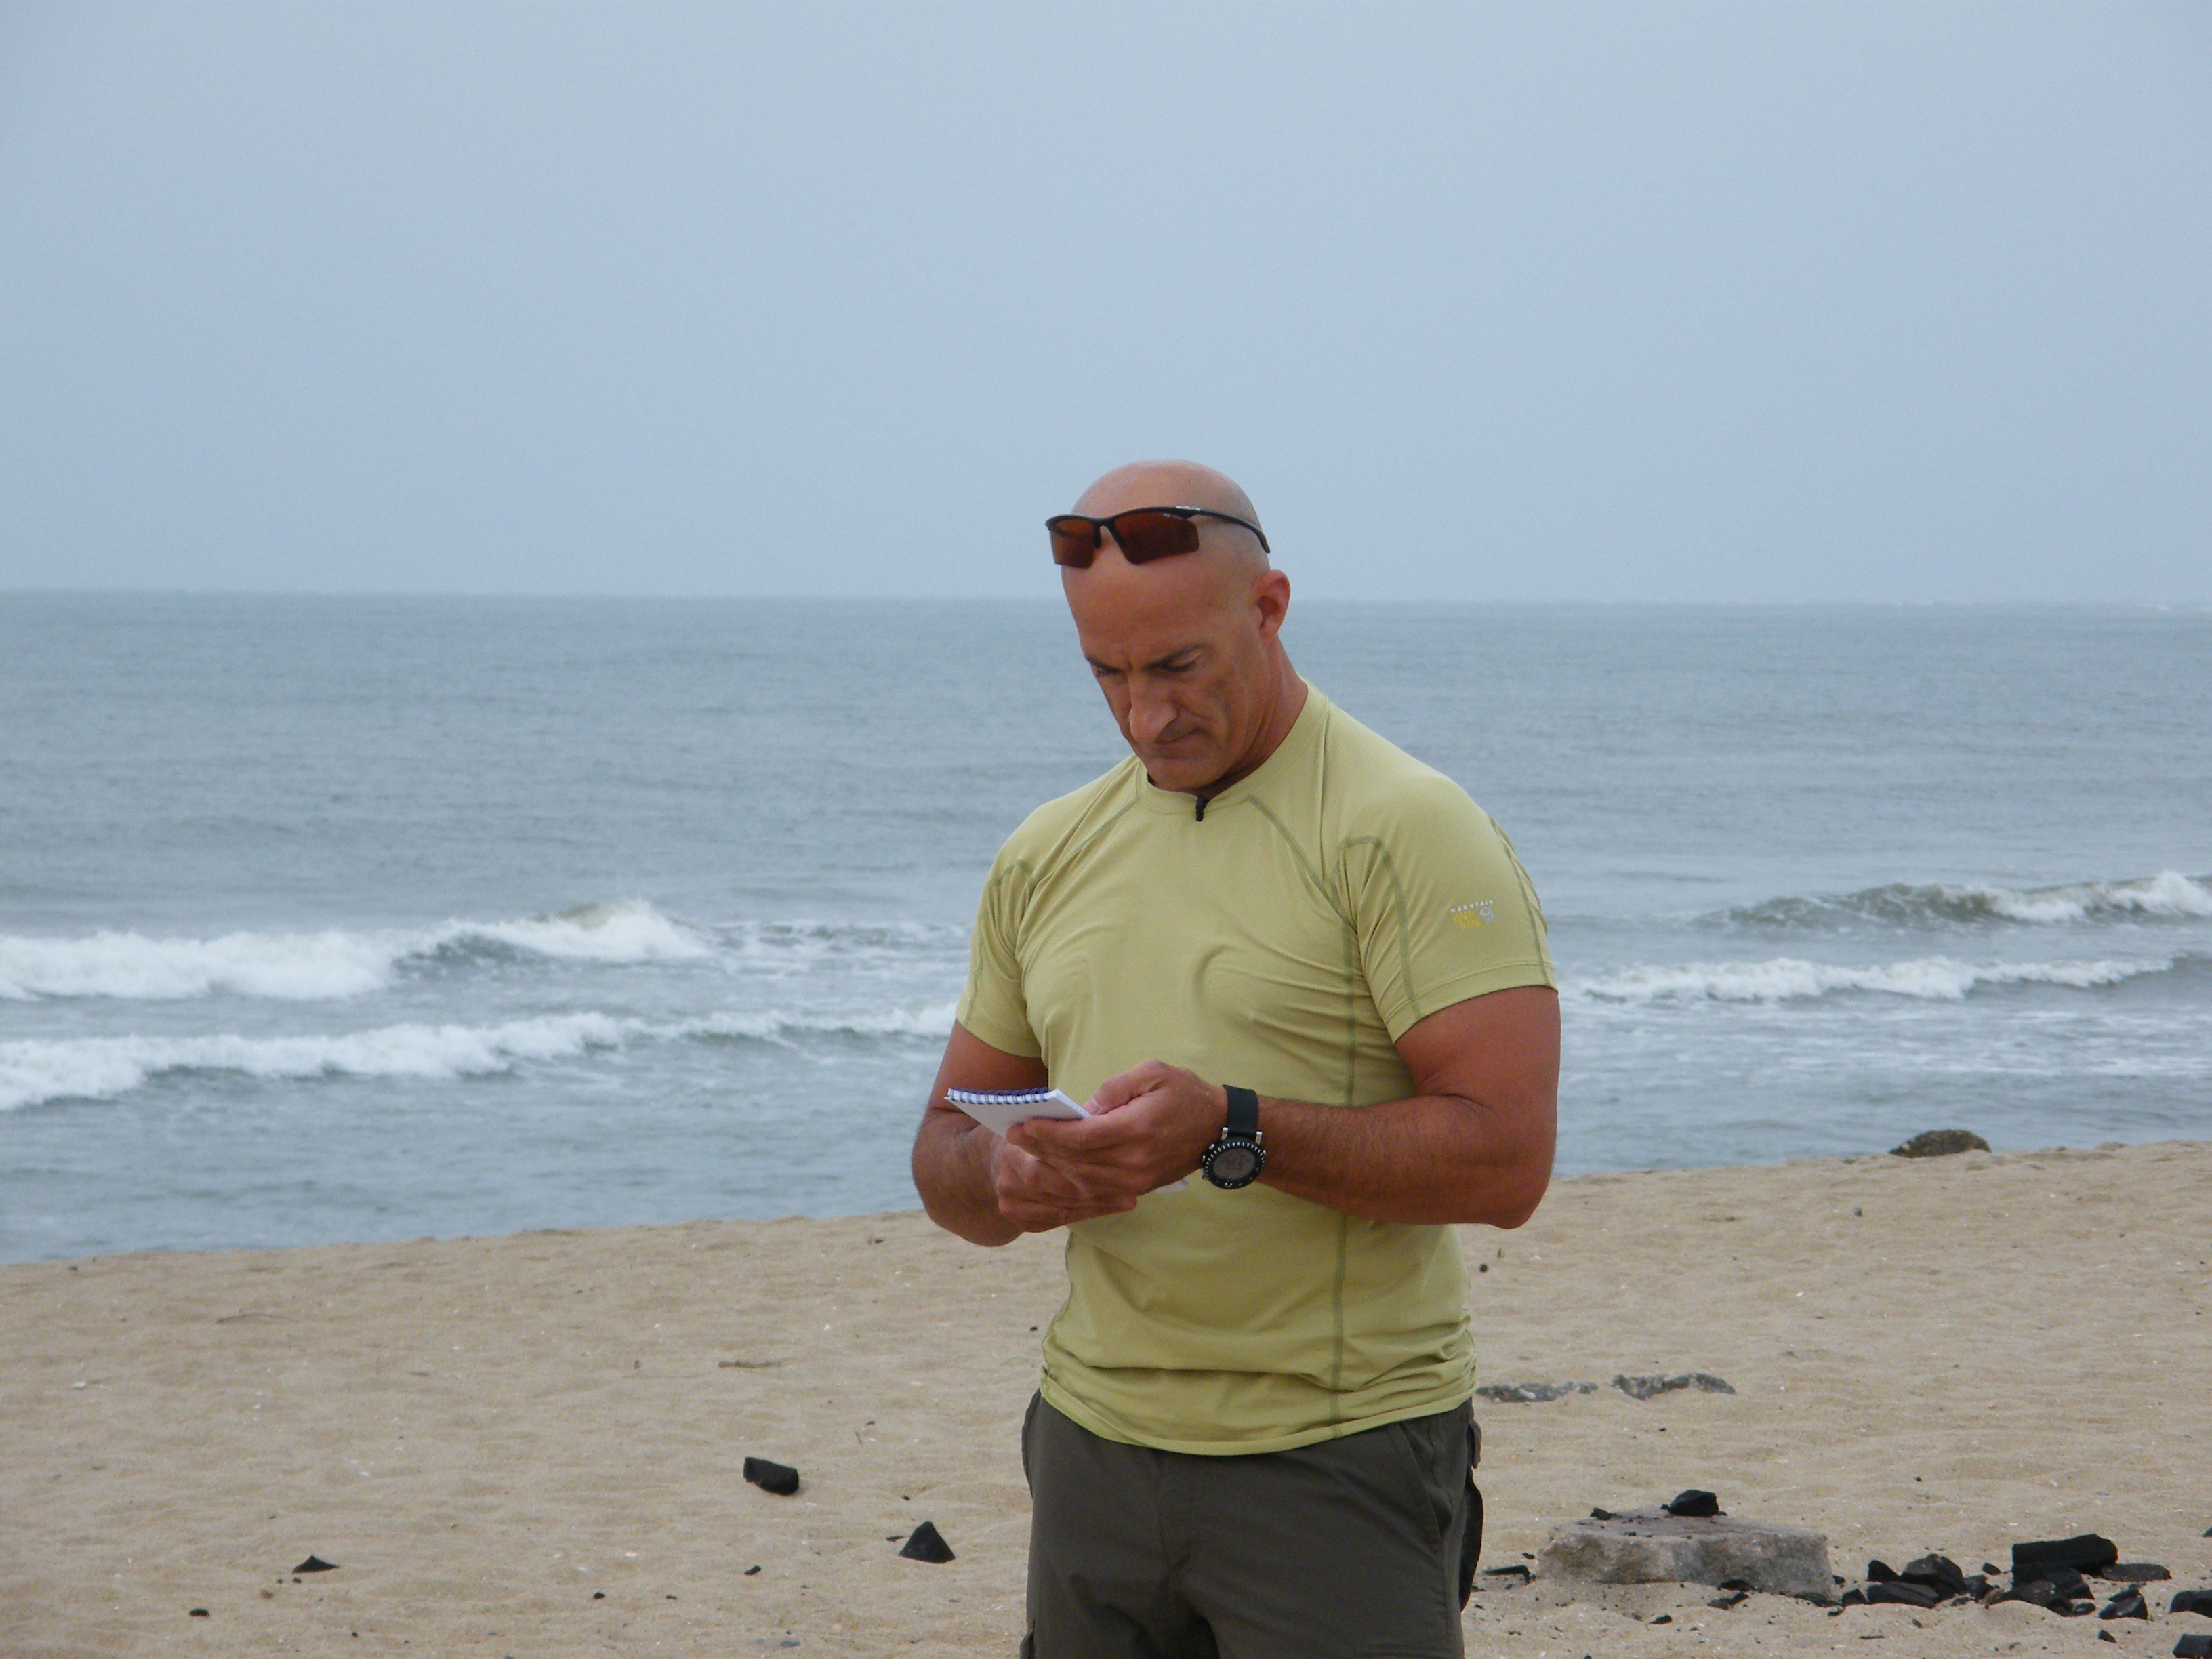 Jim Cantore Divorce Alexandra Steele http://ptsolutionsgroup.com/archive/jim-cantore-wife